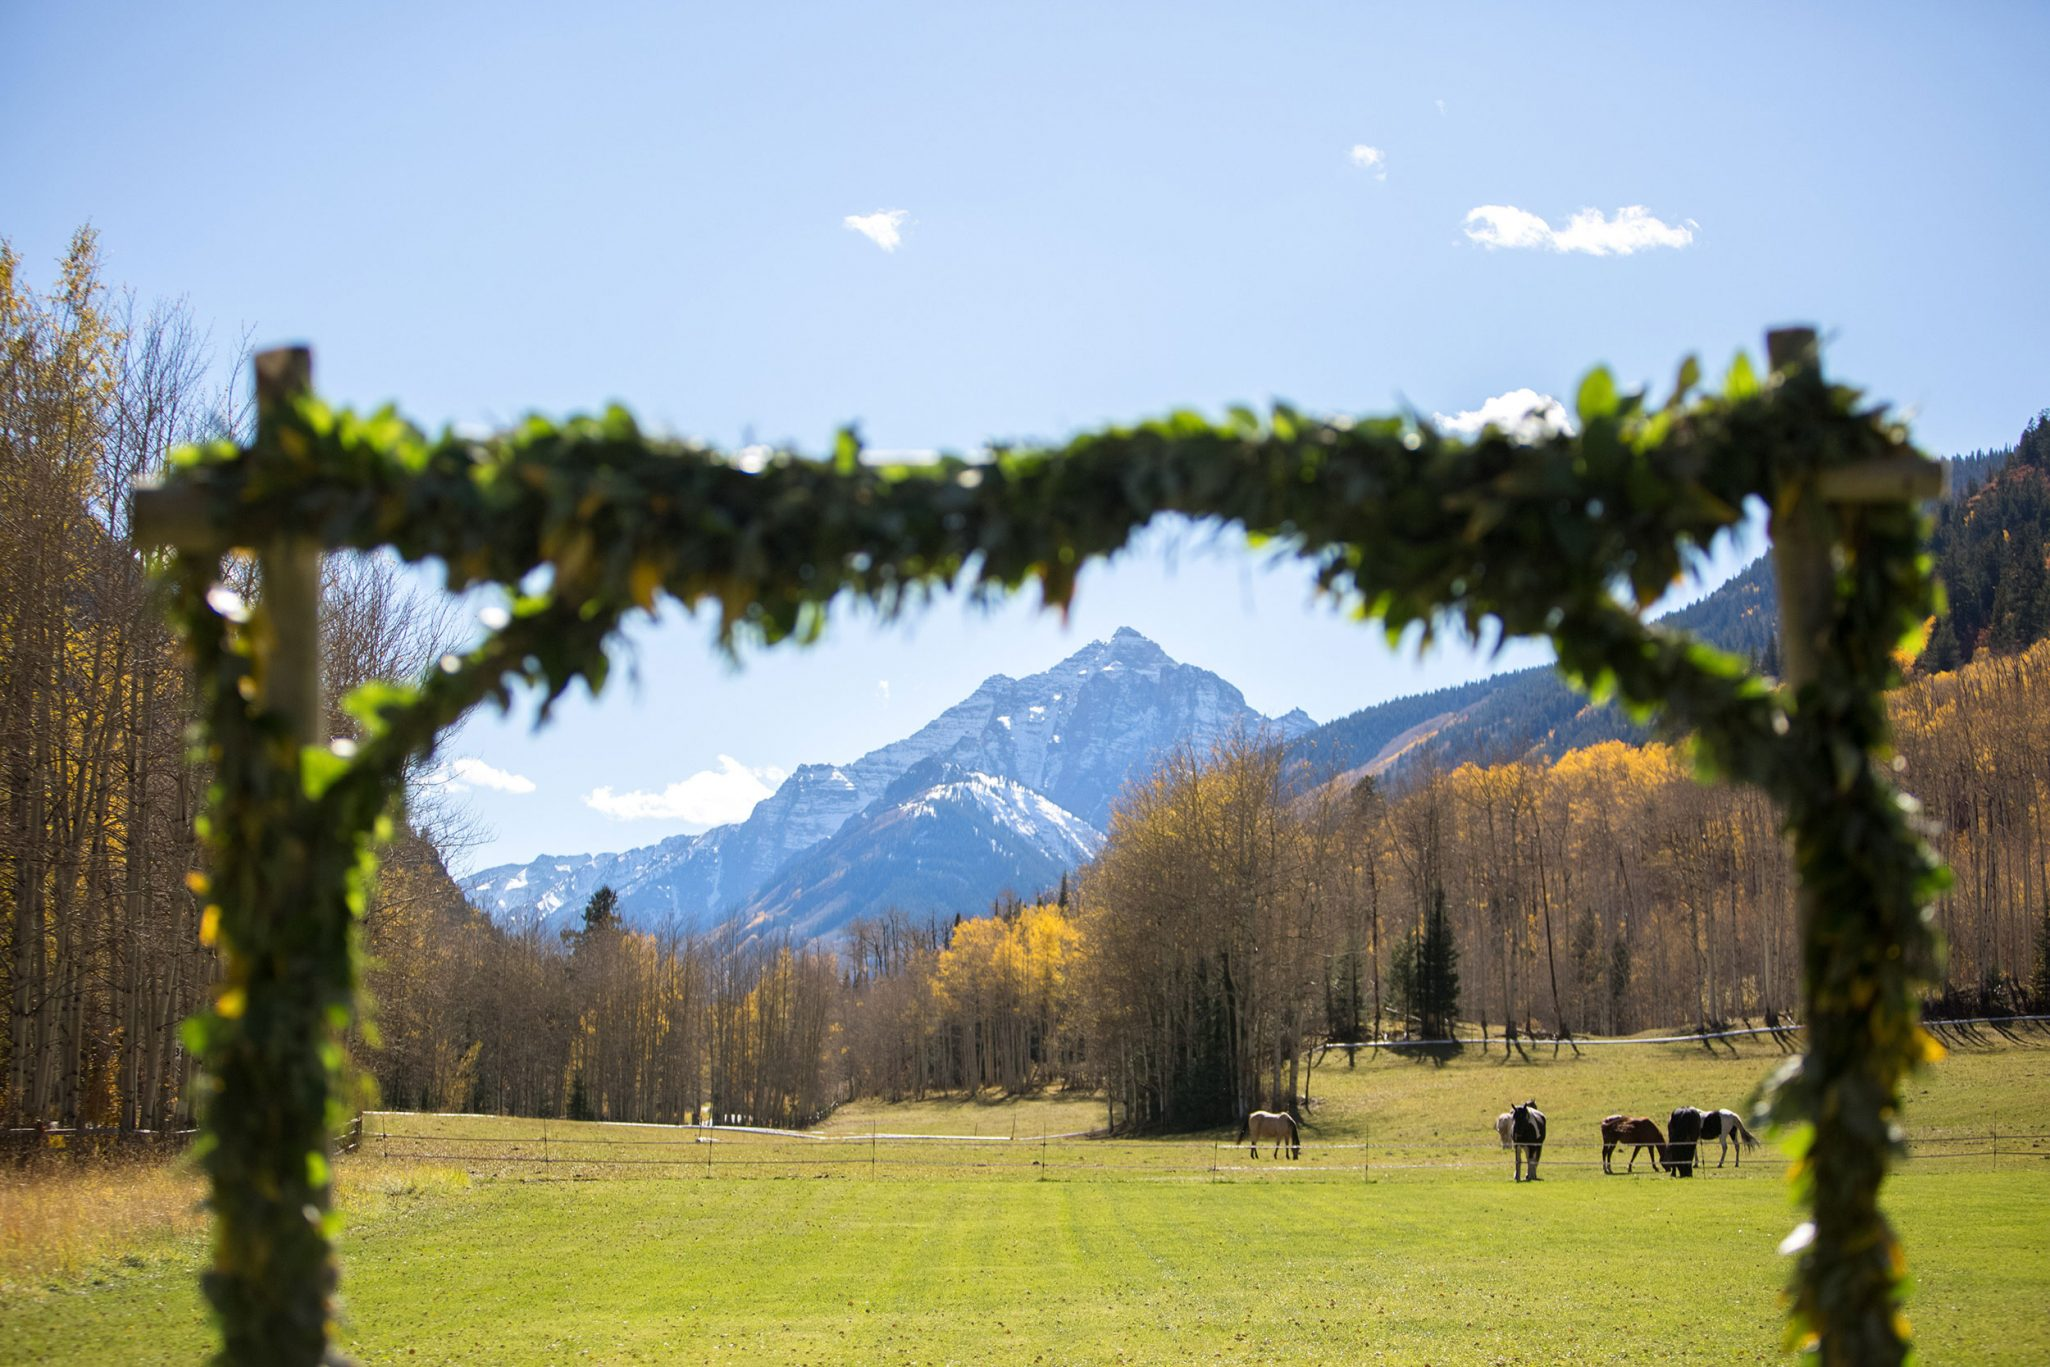 Ceremony | A Fall Aspen Wedding at T Lazy 7 Ranch, Colorado